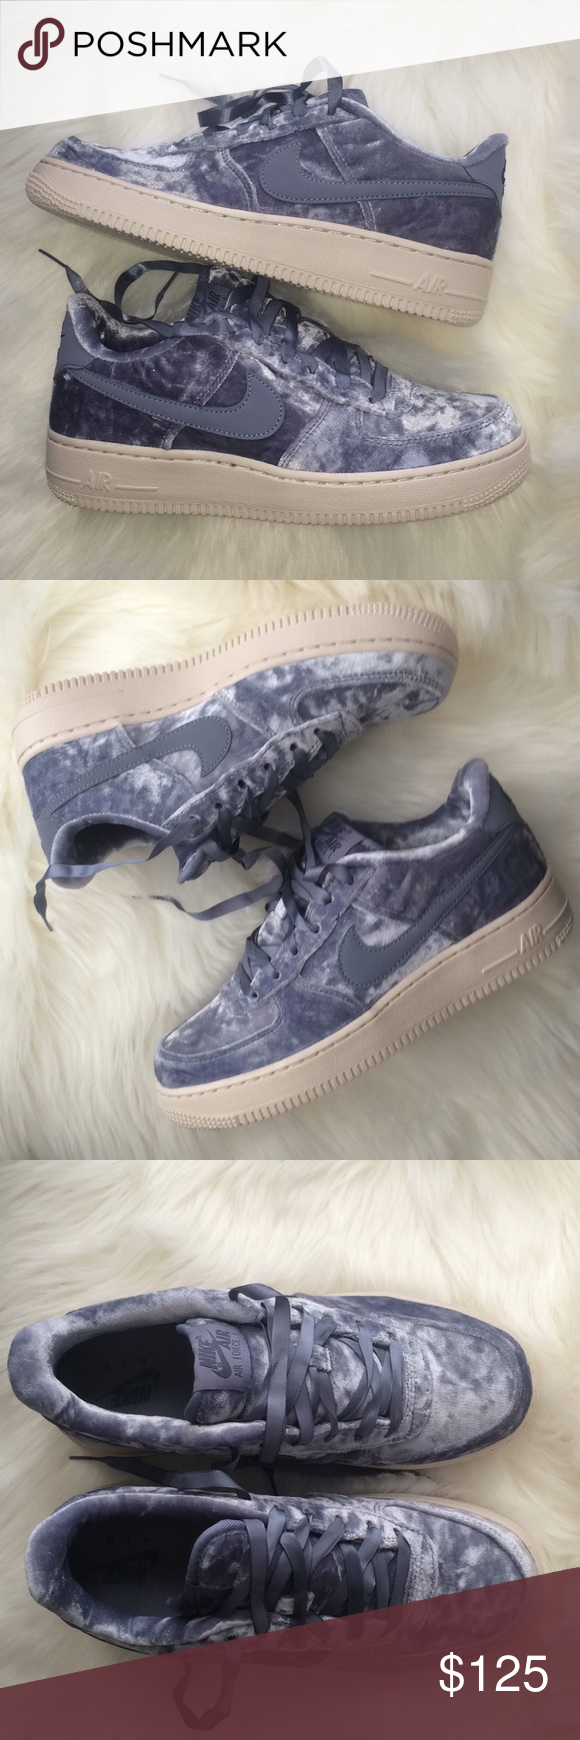 purchase cheap 339d4 59ee2 Nike Air Force 1 Lv8 sky blue soft velvet shoes Brand new without box. Size  6 youth which is a women s size 7.5. I have added a sizing chart for your  ...